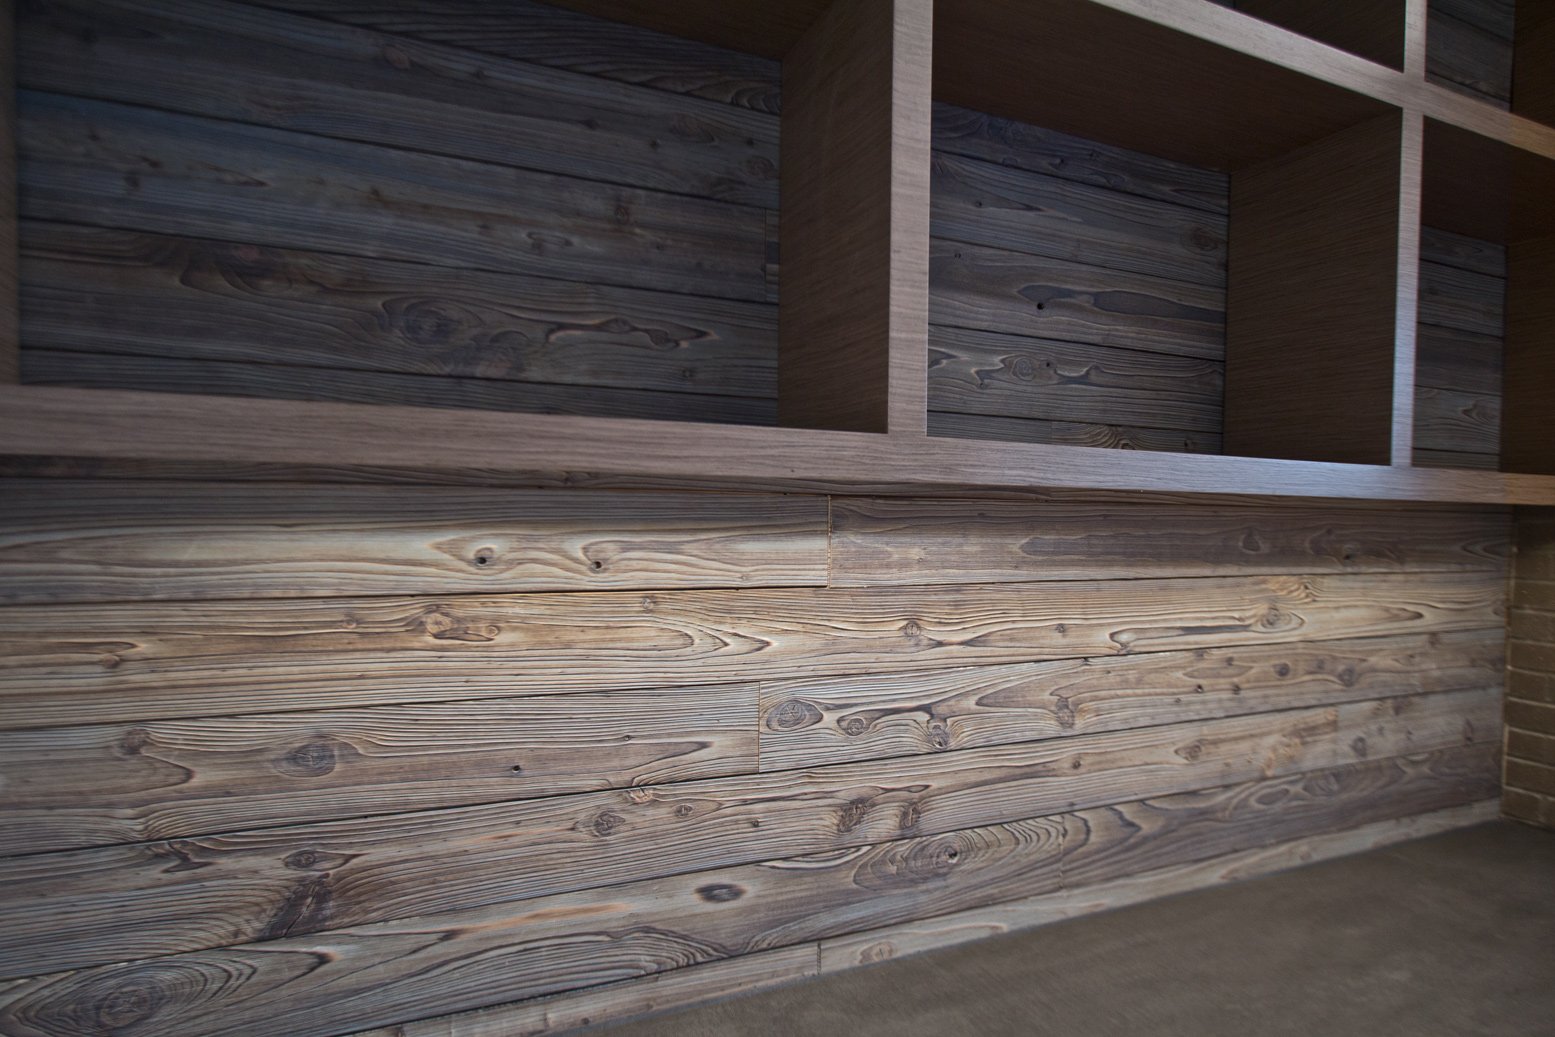 Terrapin Row :: Amenity-Filled Student Housing featuring Shou Sugi Ban Wood by reSAWN